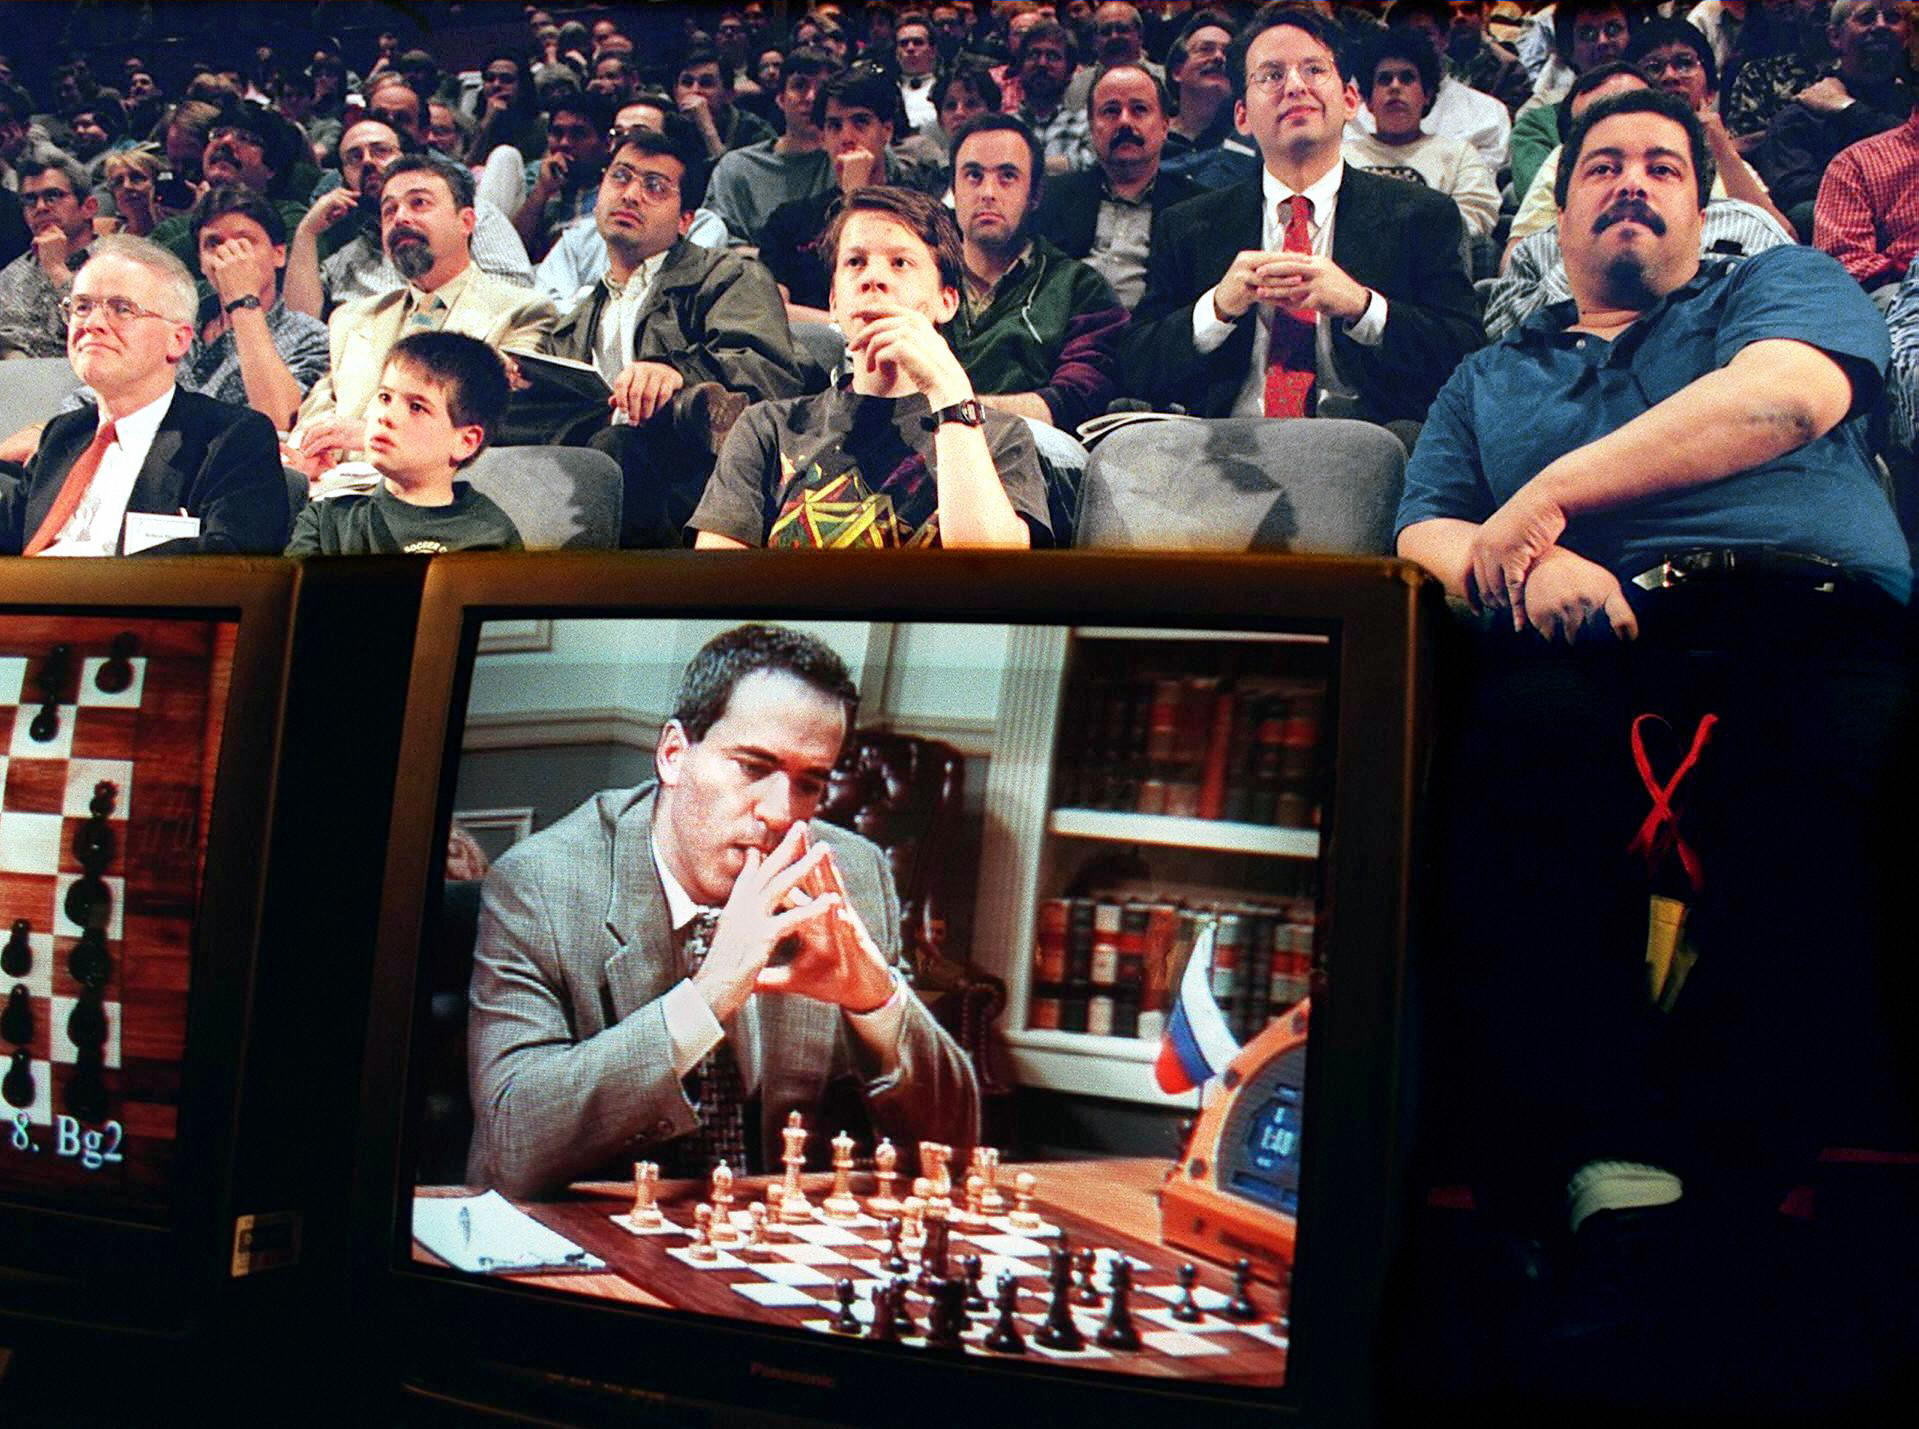 Fans watch a game Garry Kasparov and the IBM Deep Blue computer in 1997.